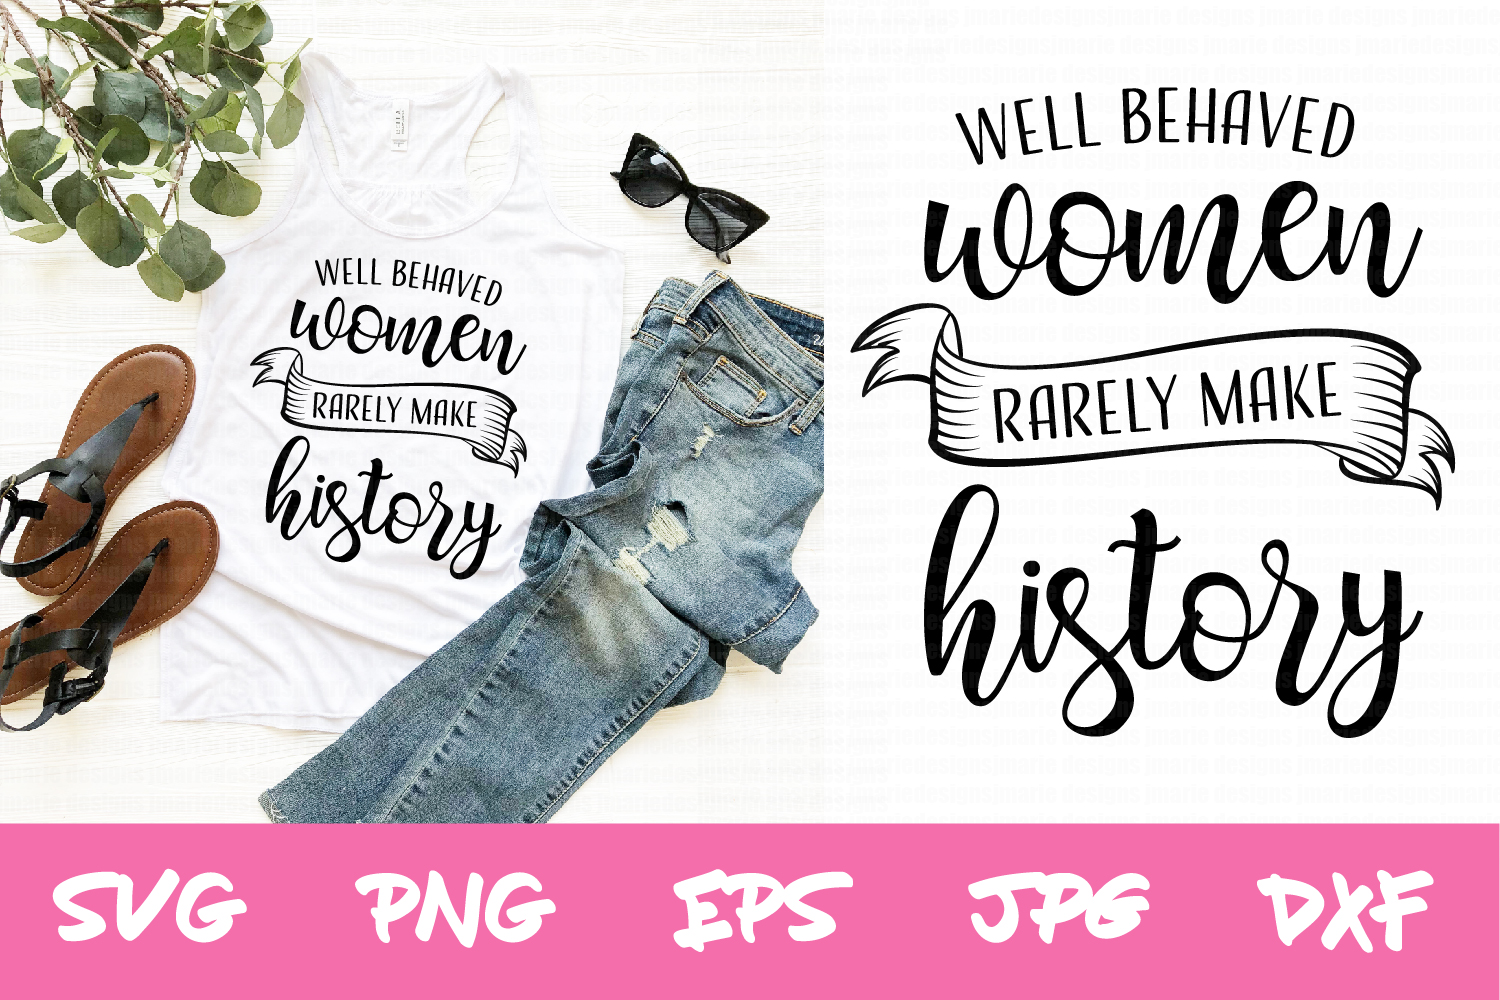 Download Free Well Behaved Women Svg Files Graphic By Thejaemarie Creative for Cricut Explore, Silhouette and other cutting machines.